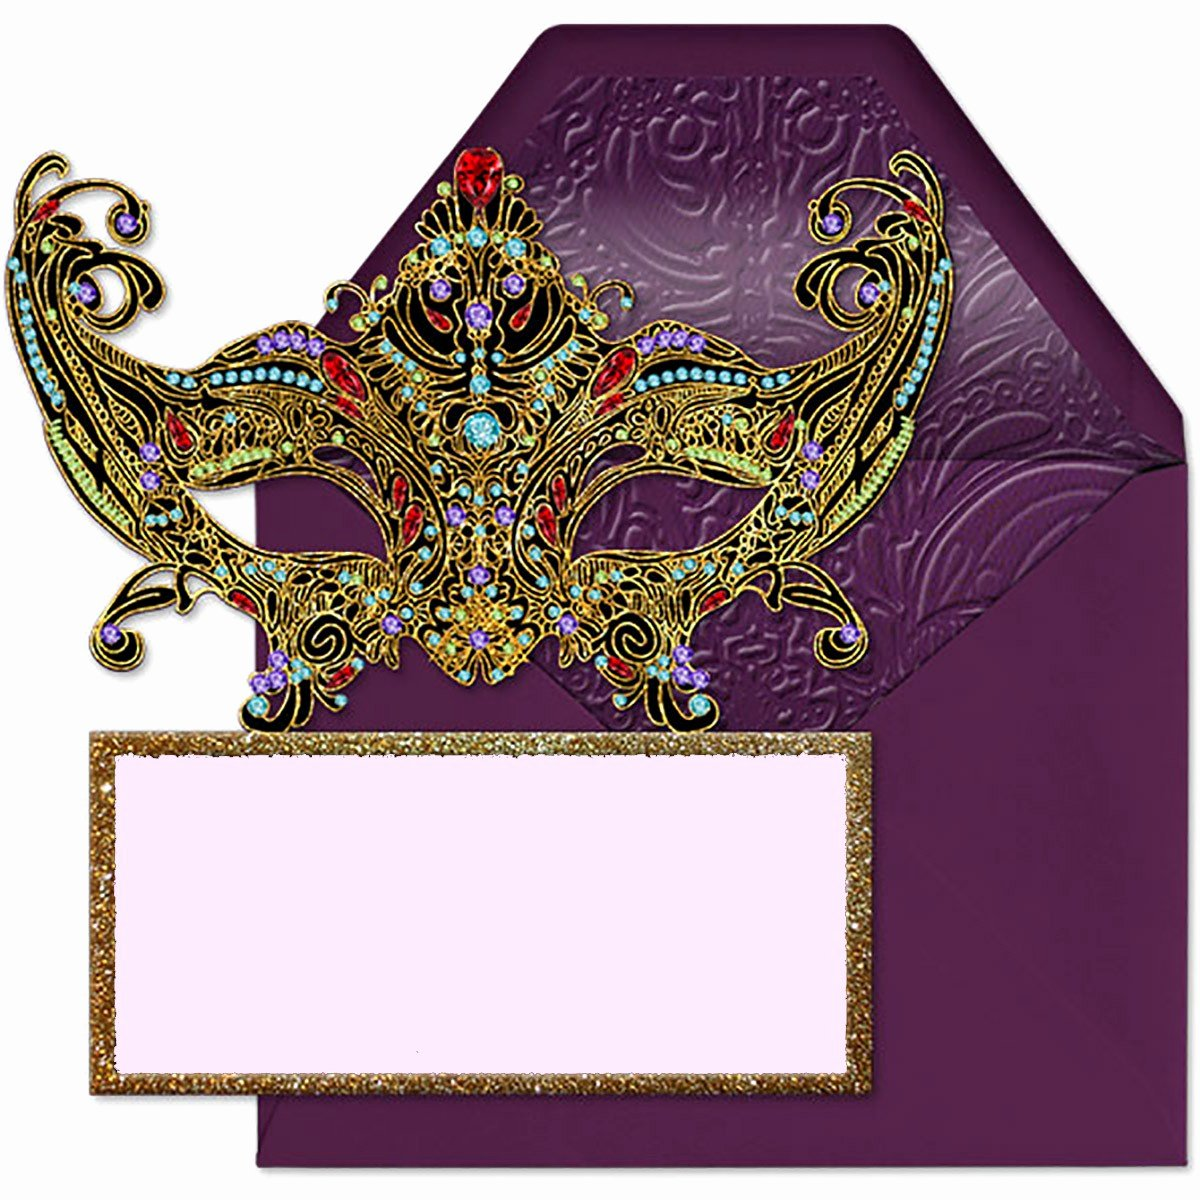 Masquerade Party Invitations Templates Free Beautiful Free Printable Masquerade Invitation Templates